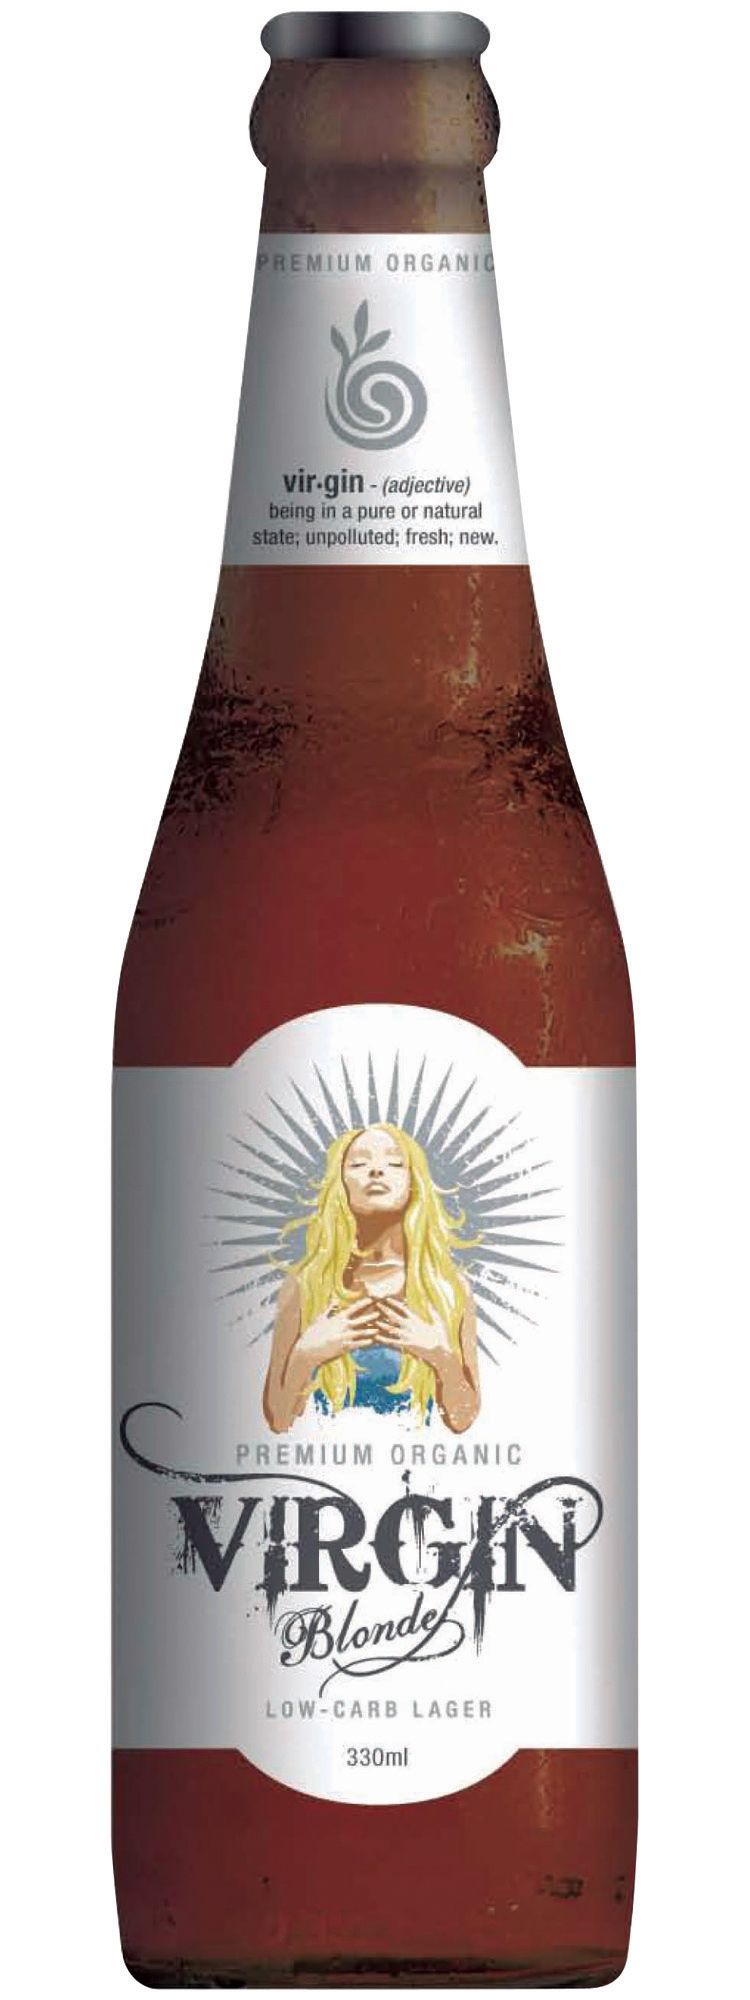 Image detail for virgin blonde organic lager dan murphys buy image detail for virgin blonde organic lager dan murphys buy wine champagne sciox Image collections